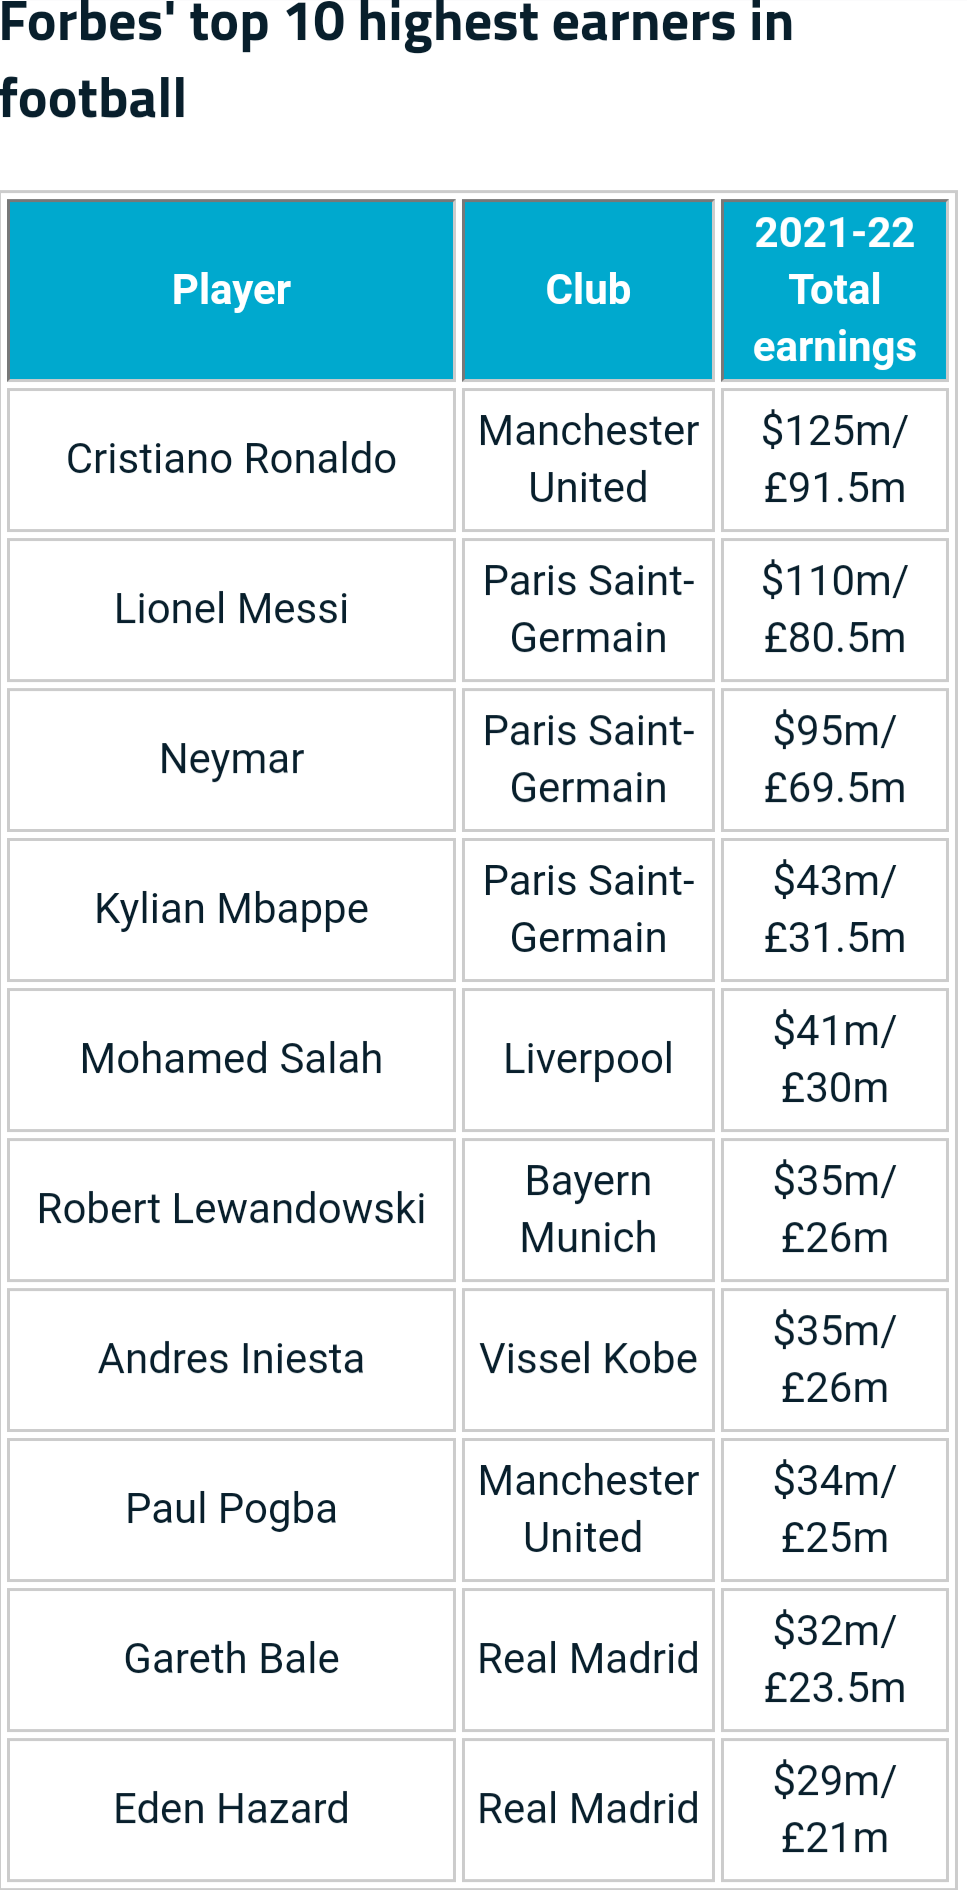 Cristiano Ronaldo overtakes Lionel Messi as Forbes